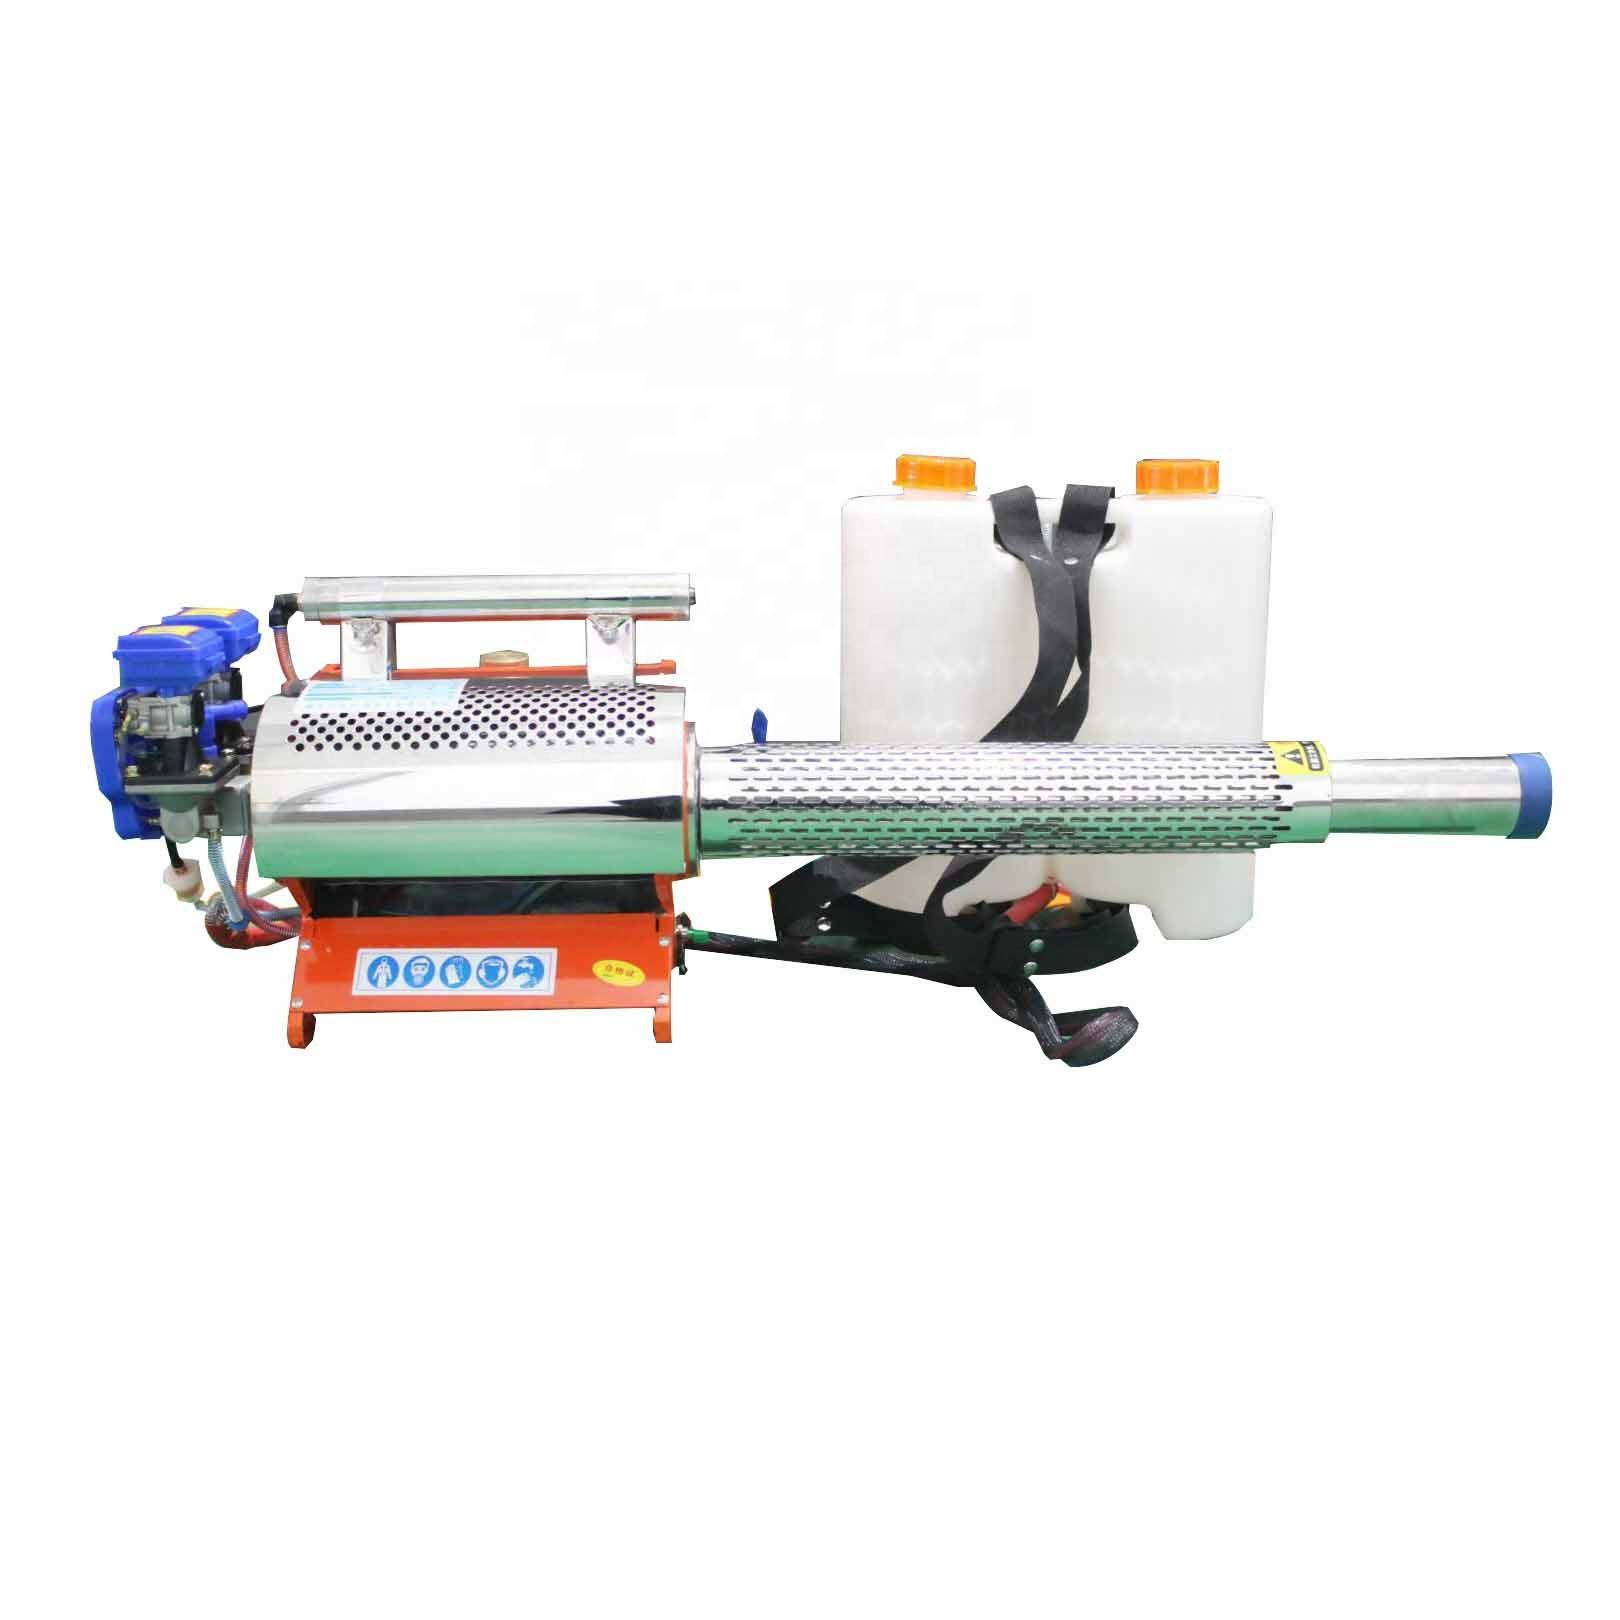 Cost effective hot sale 80 W 316 stainless steel ulv fogger atomizers sprinkler fogger spray machine water spray gun